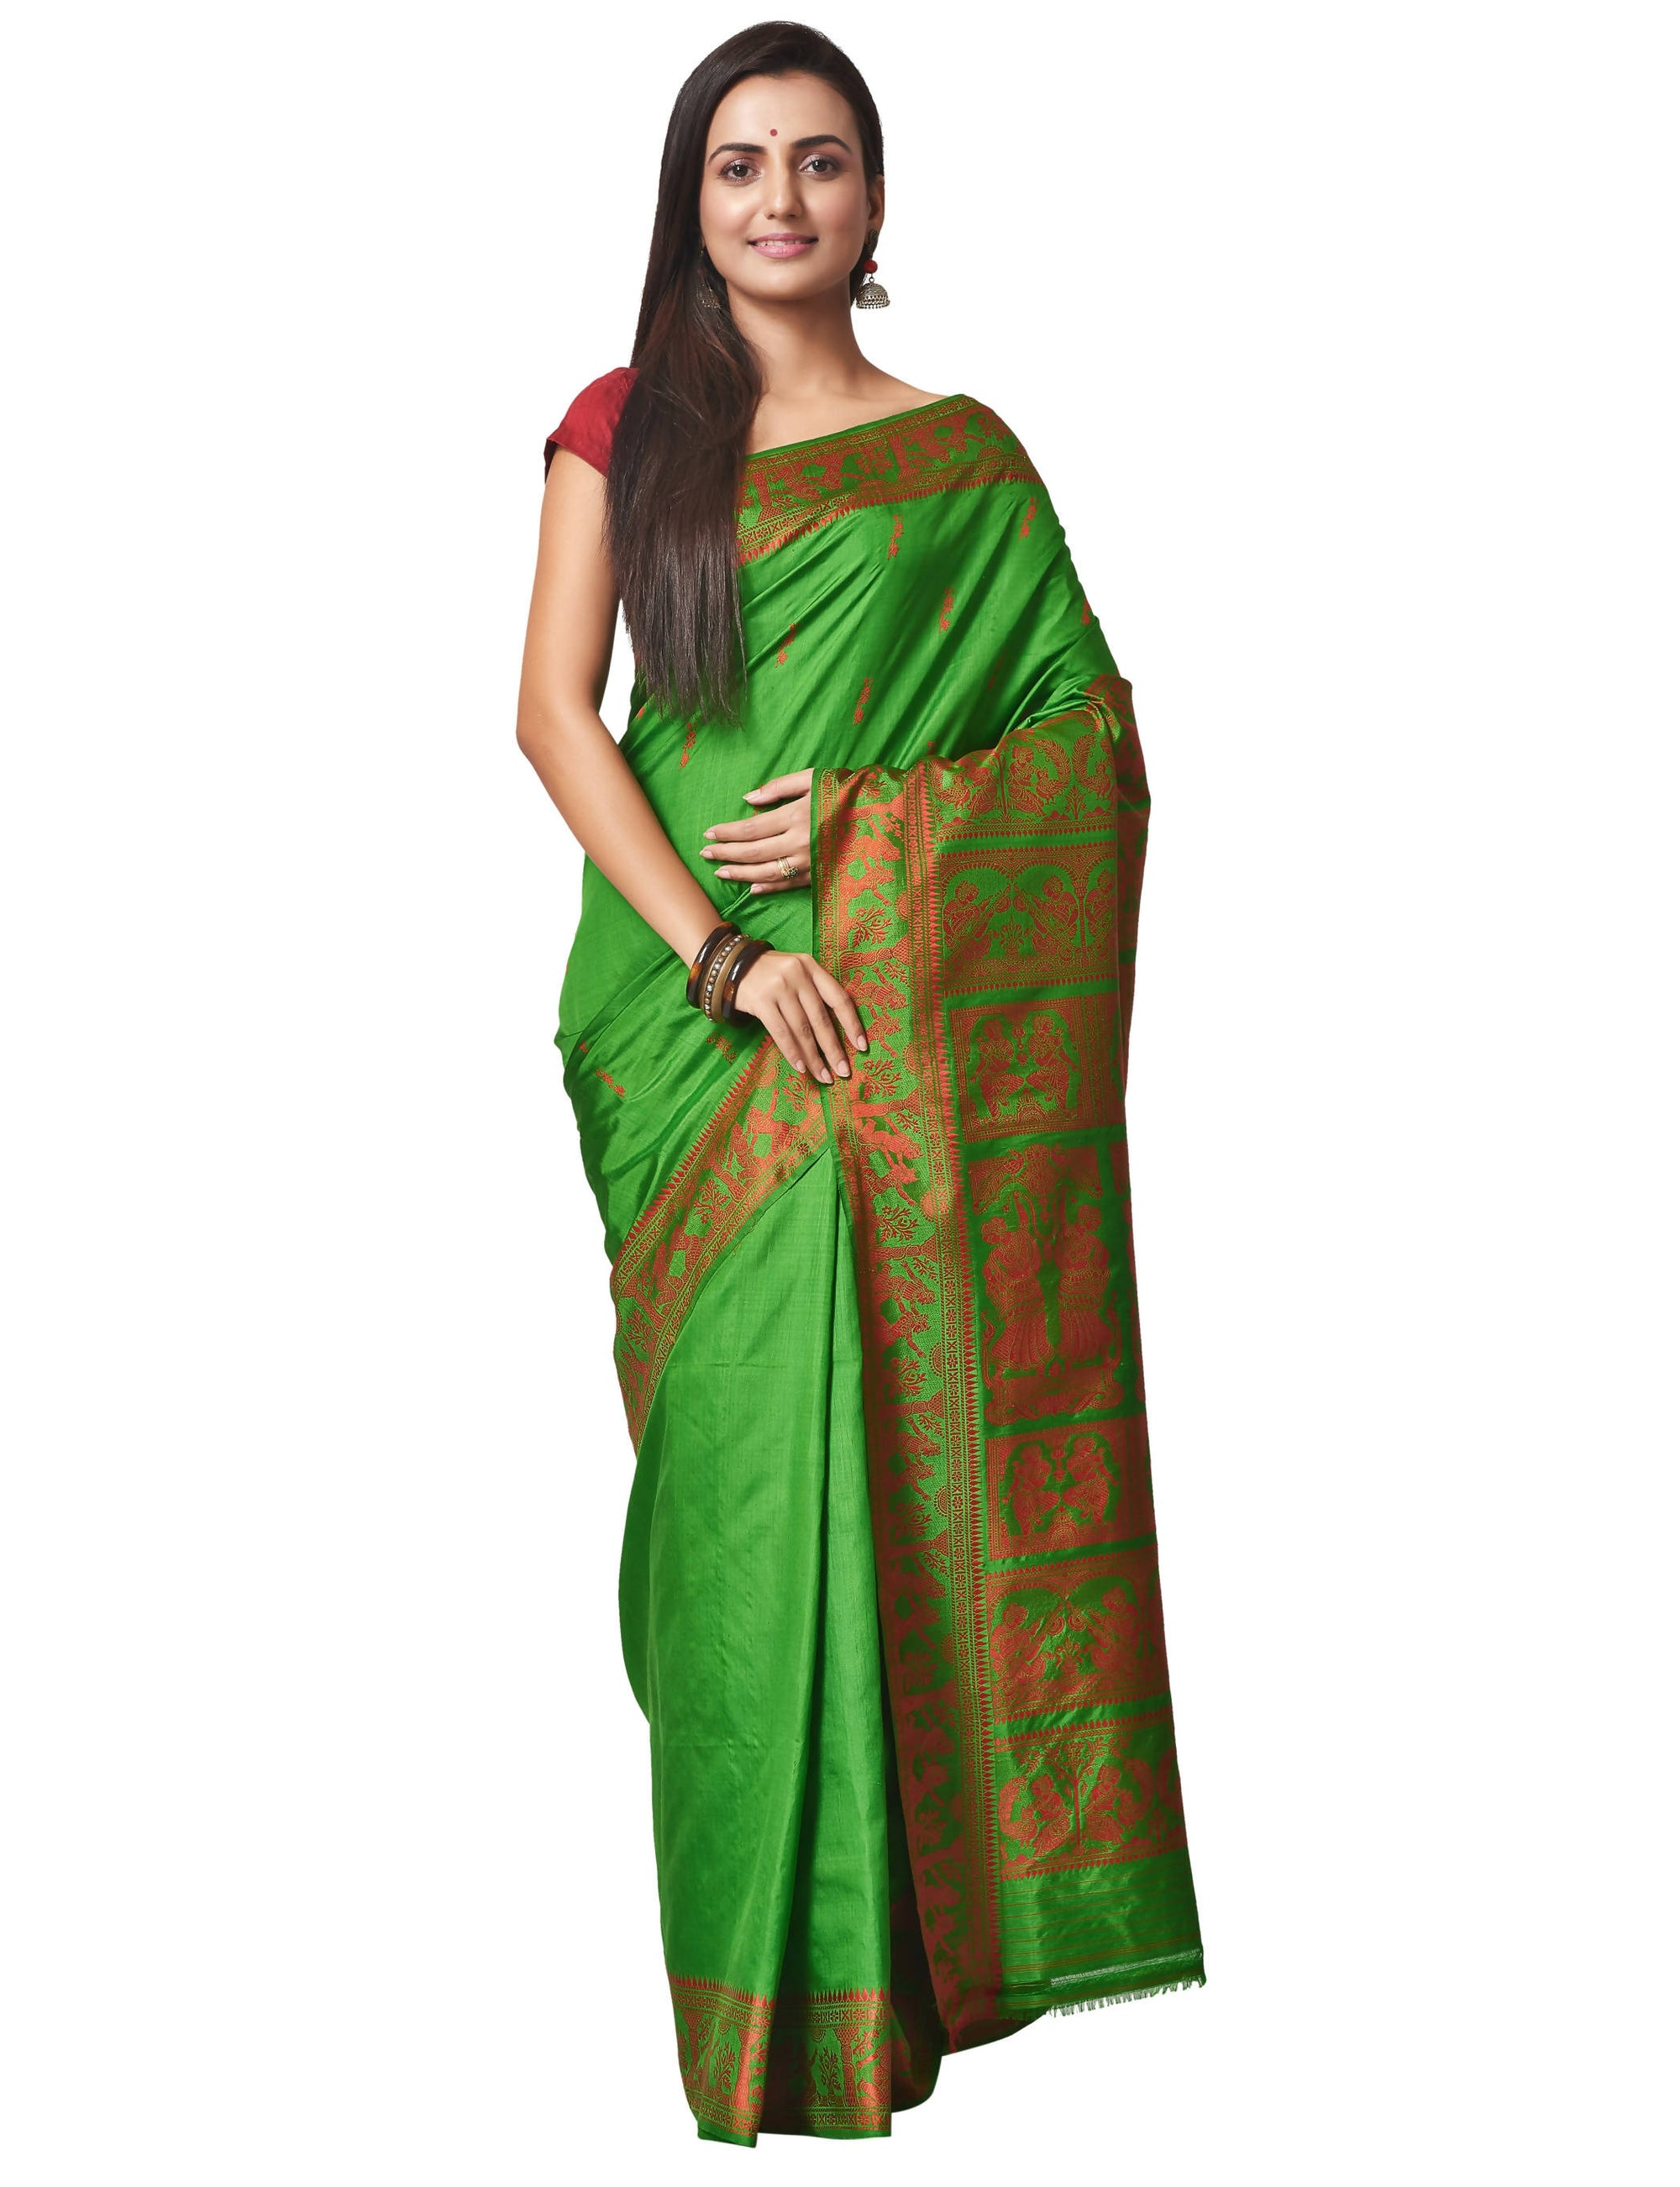 Biswa Bangla Handloom Baluchari Silk Saree - Green and Red